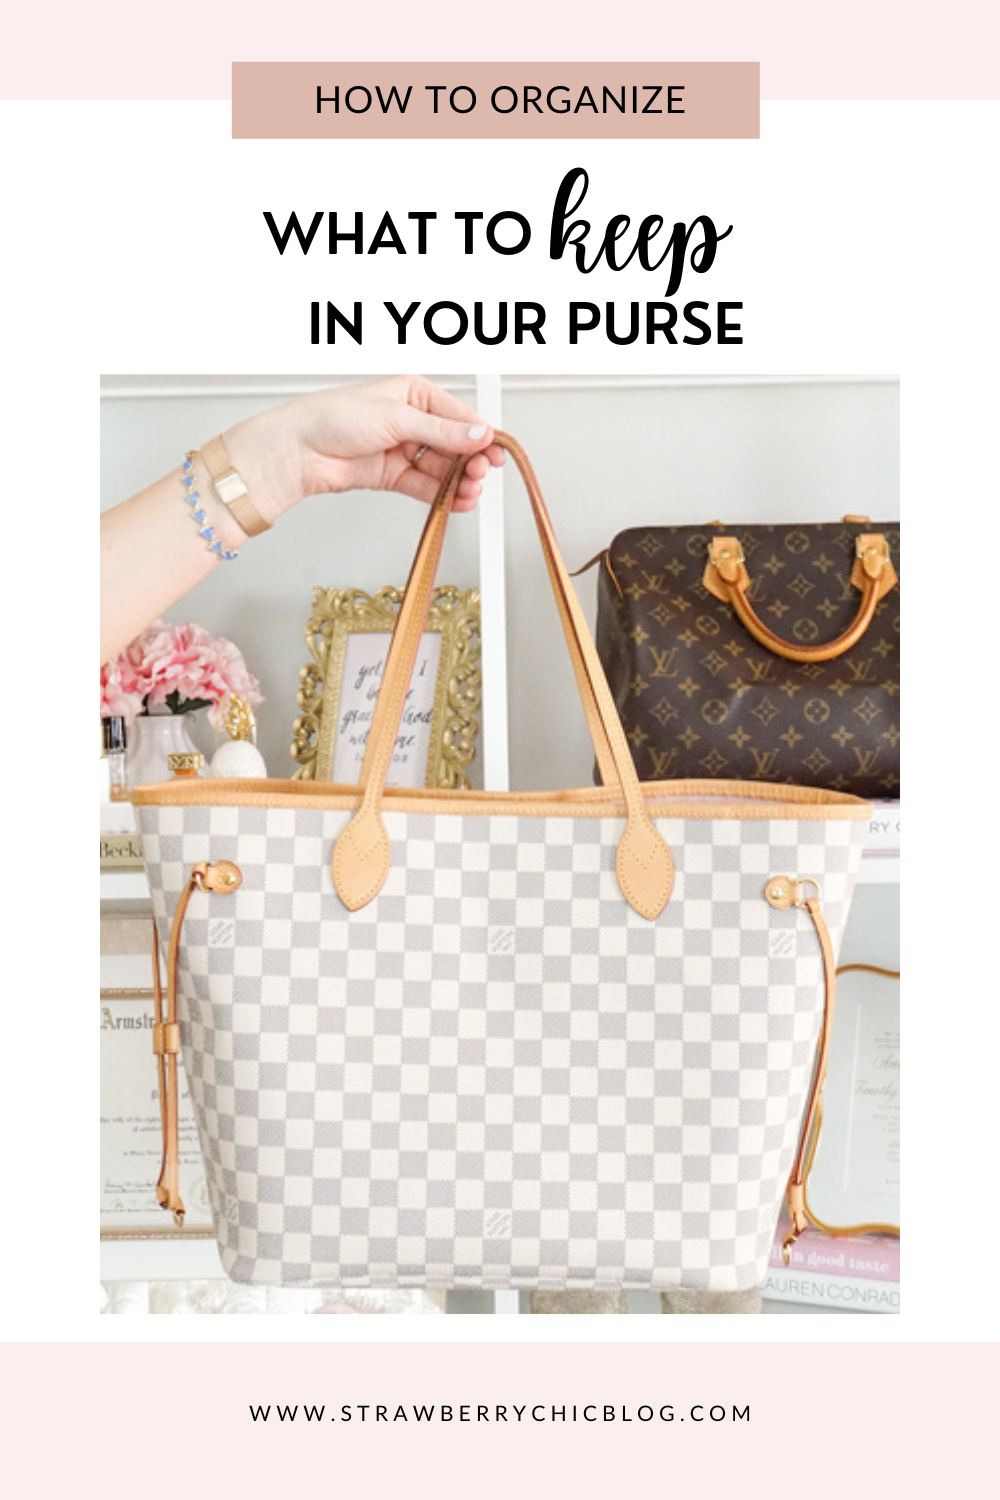 What Should You Keep In Your Purse